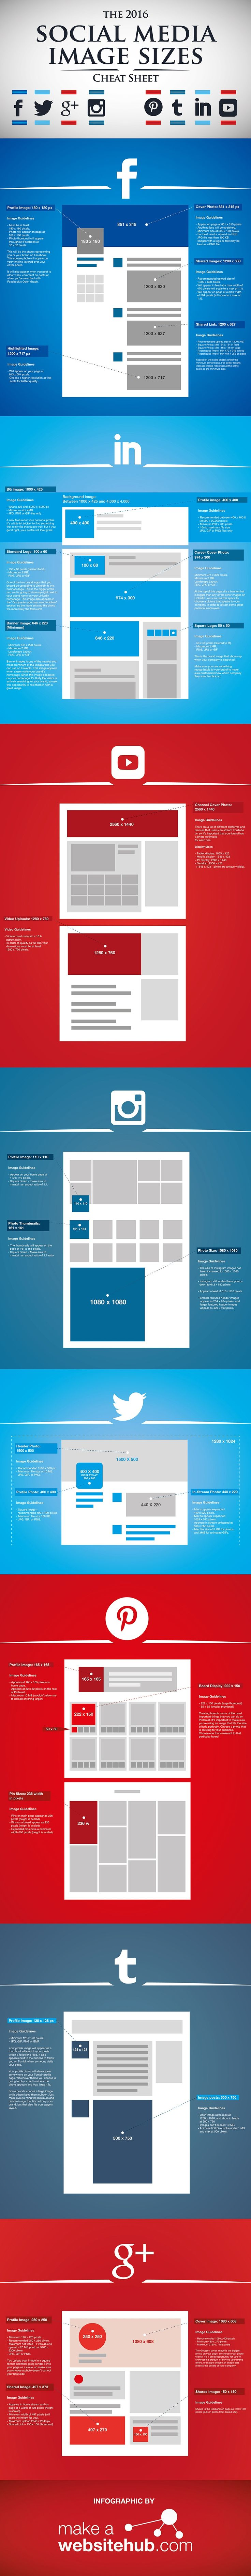 Ultimate #SocialMedia Cheat Sheet For Perfectly Sized Images In 2016 - #infographic